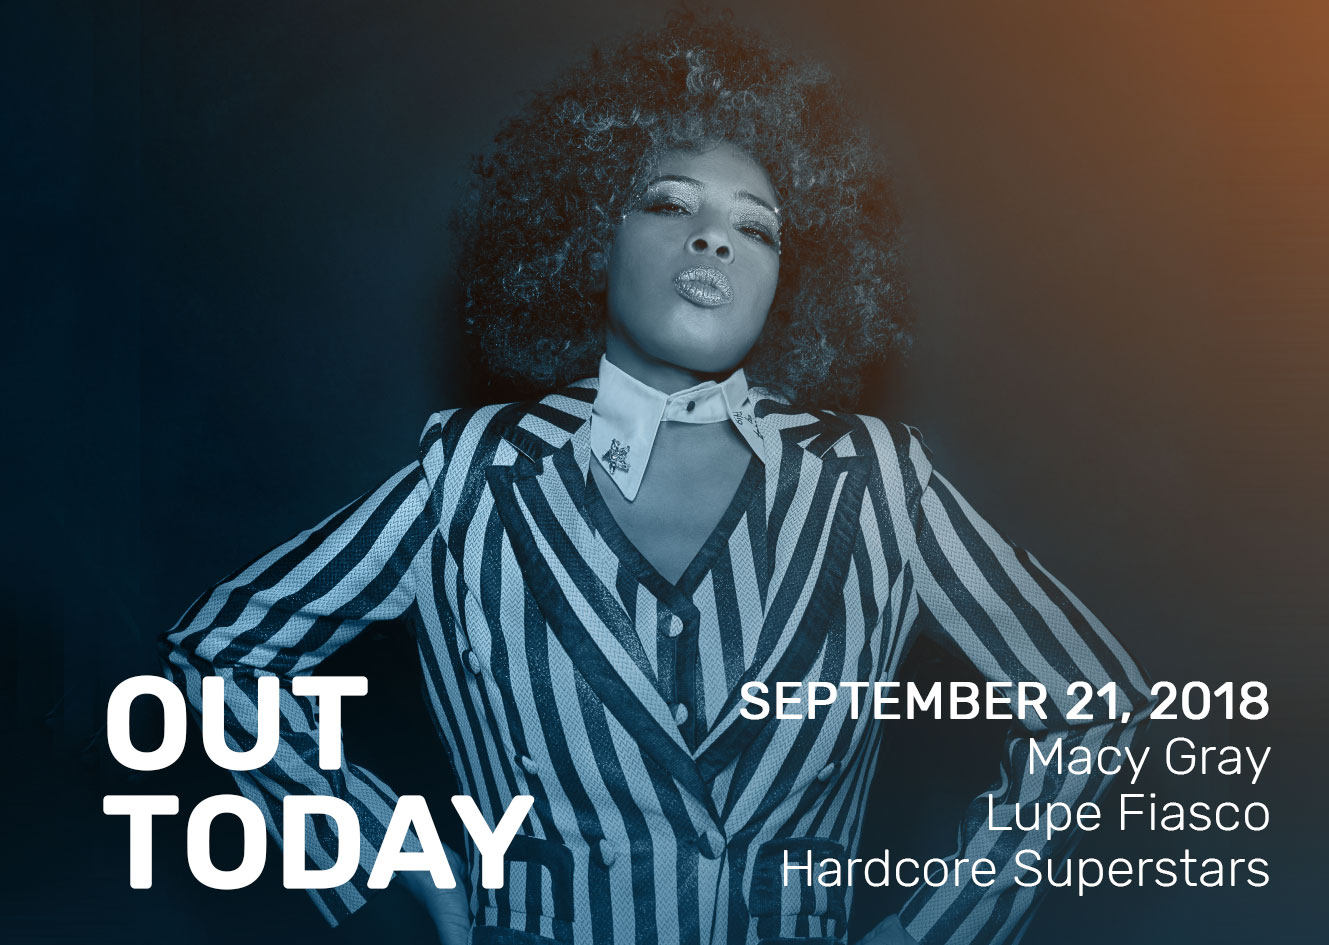 Out Today by The Orchard: Lupe Fiasco, Macy Gray & More